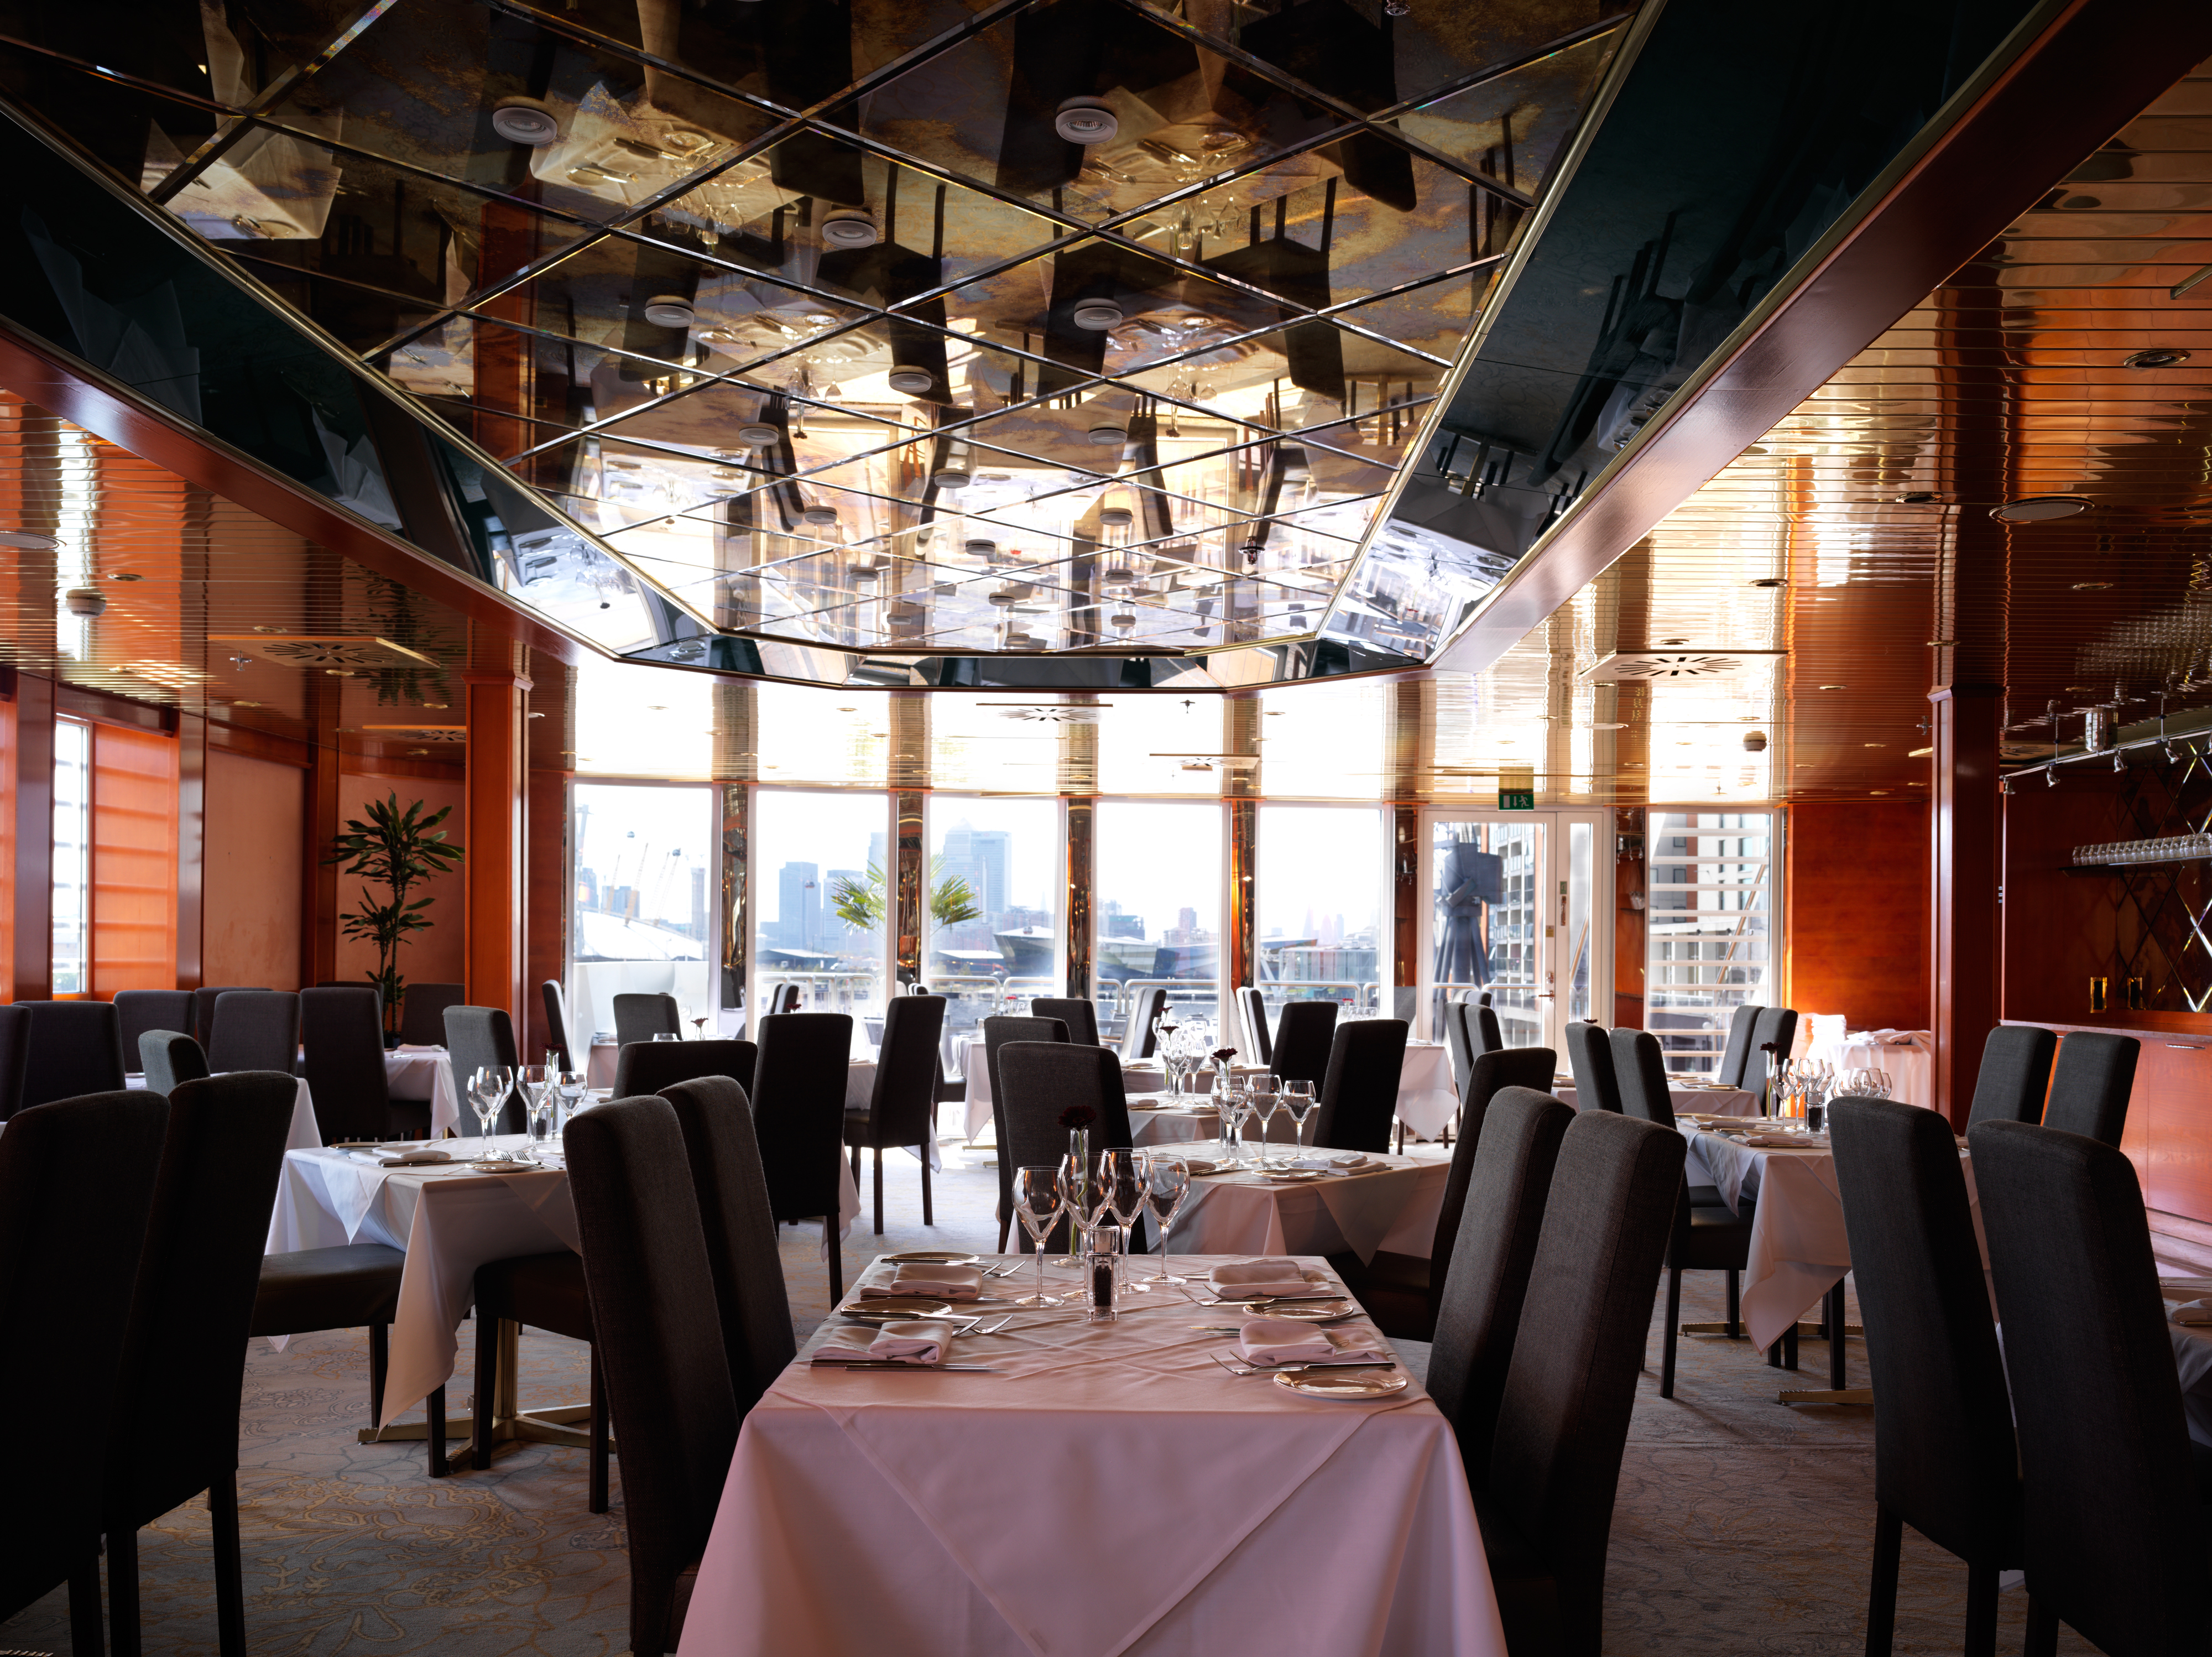 All aboard the sunborn yacht hotel london ybw for Best private dining rooms central london